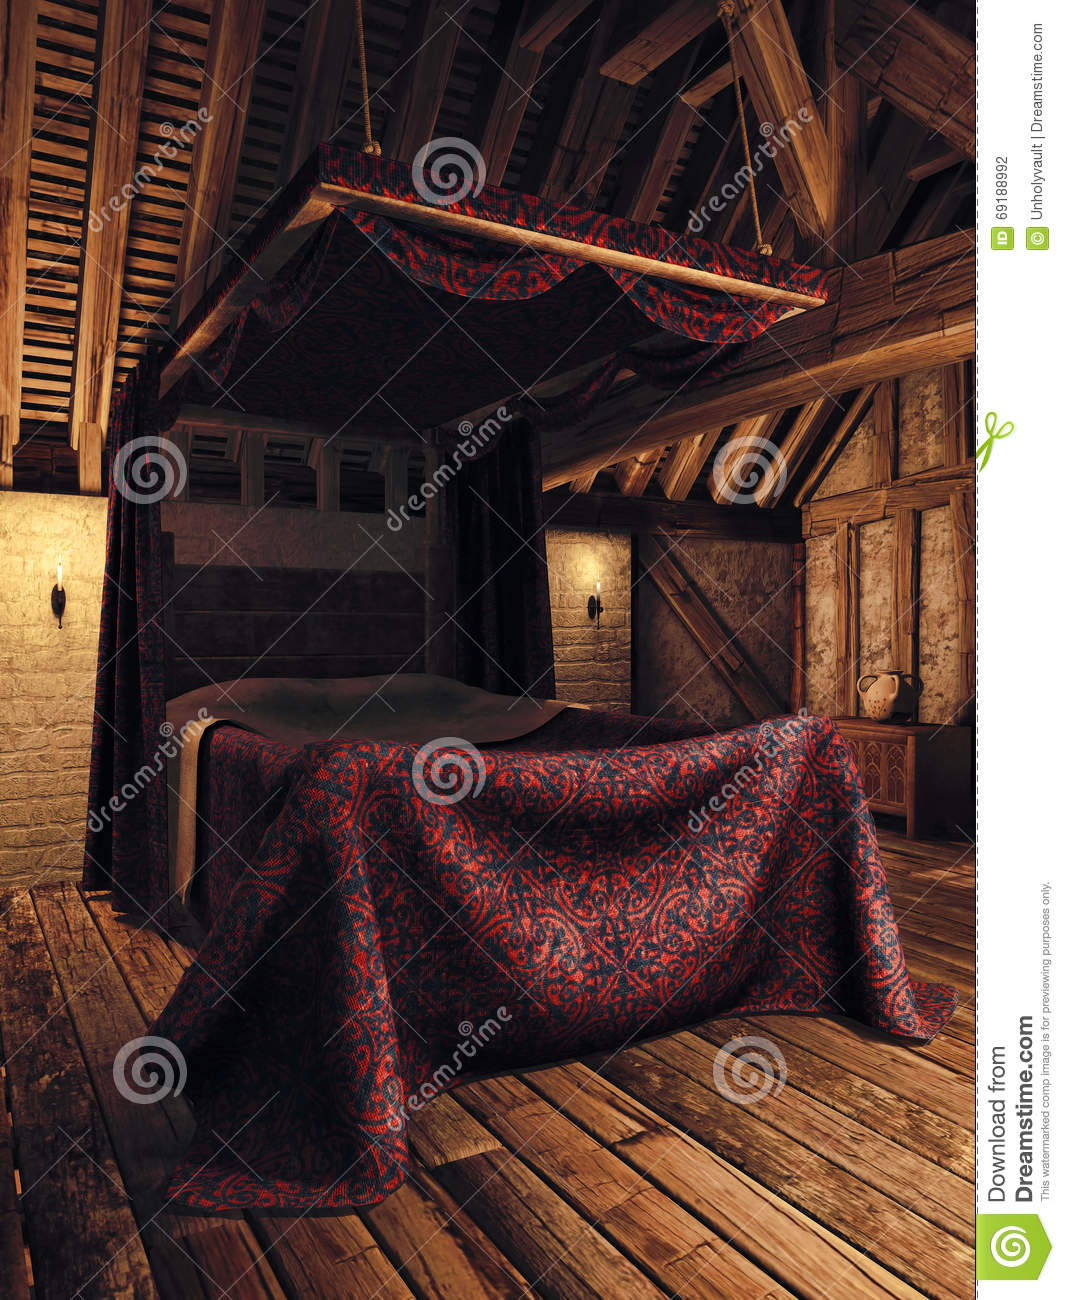 Medieval Bedroom Medieval Bedroom With Candles Stock Illustration Image 69188992